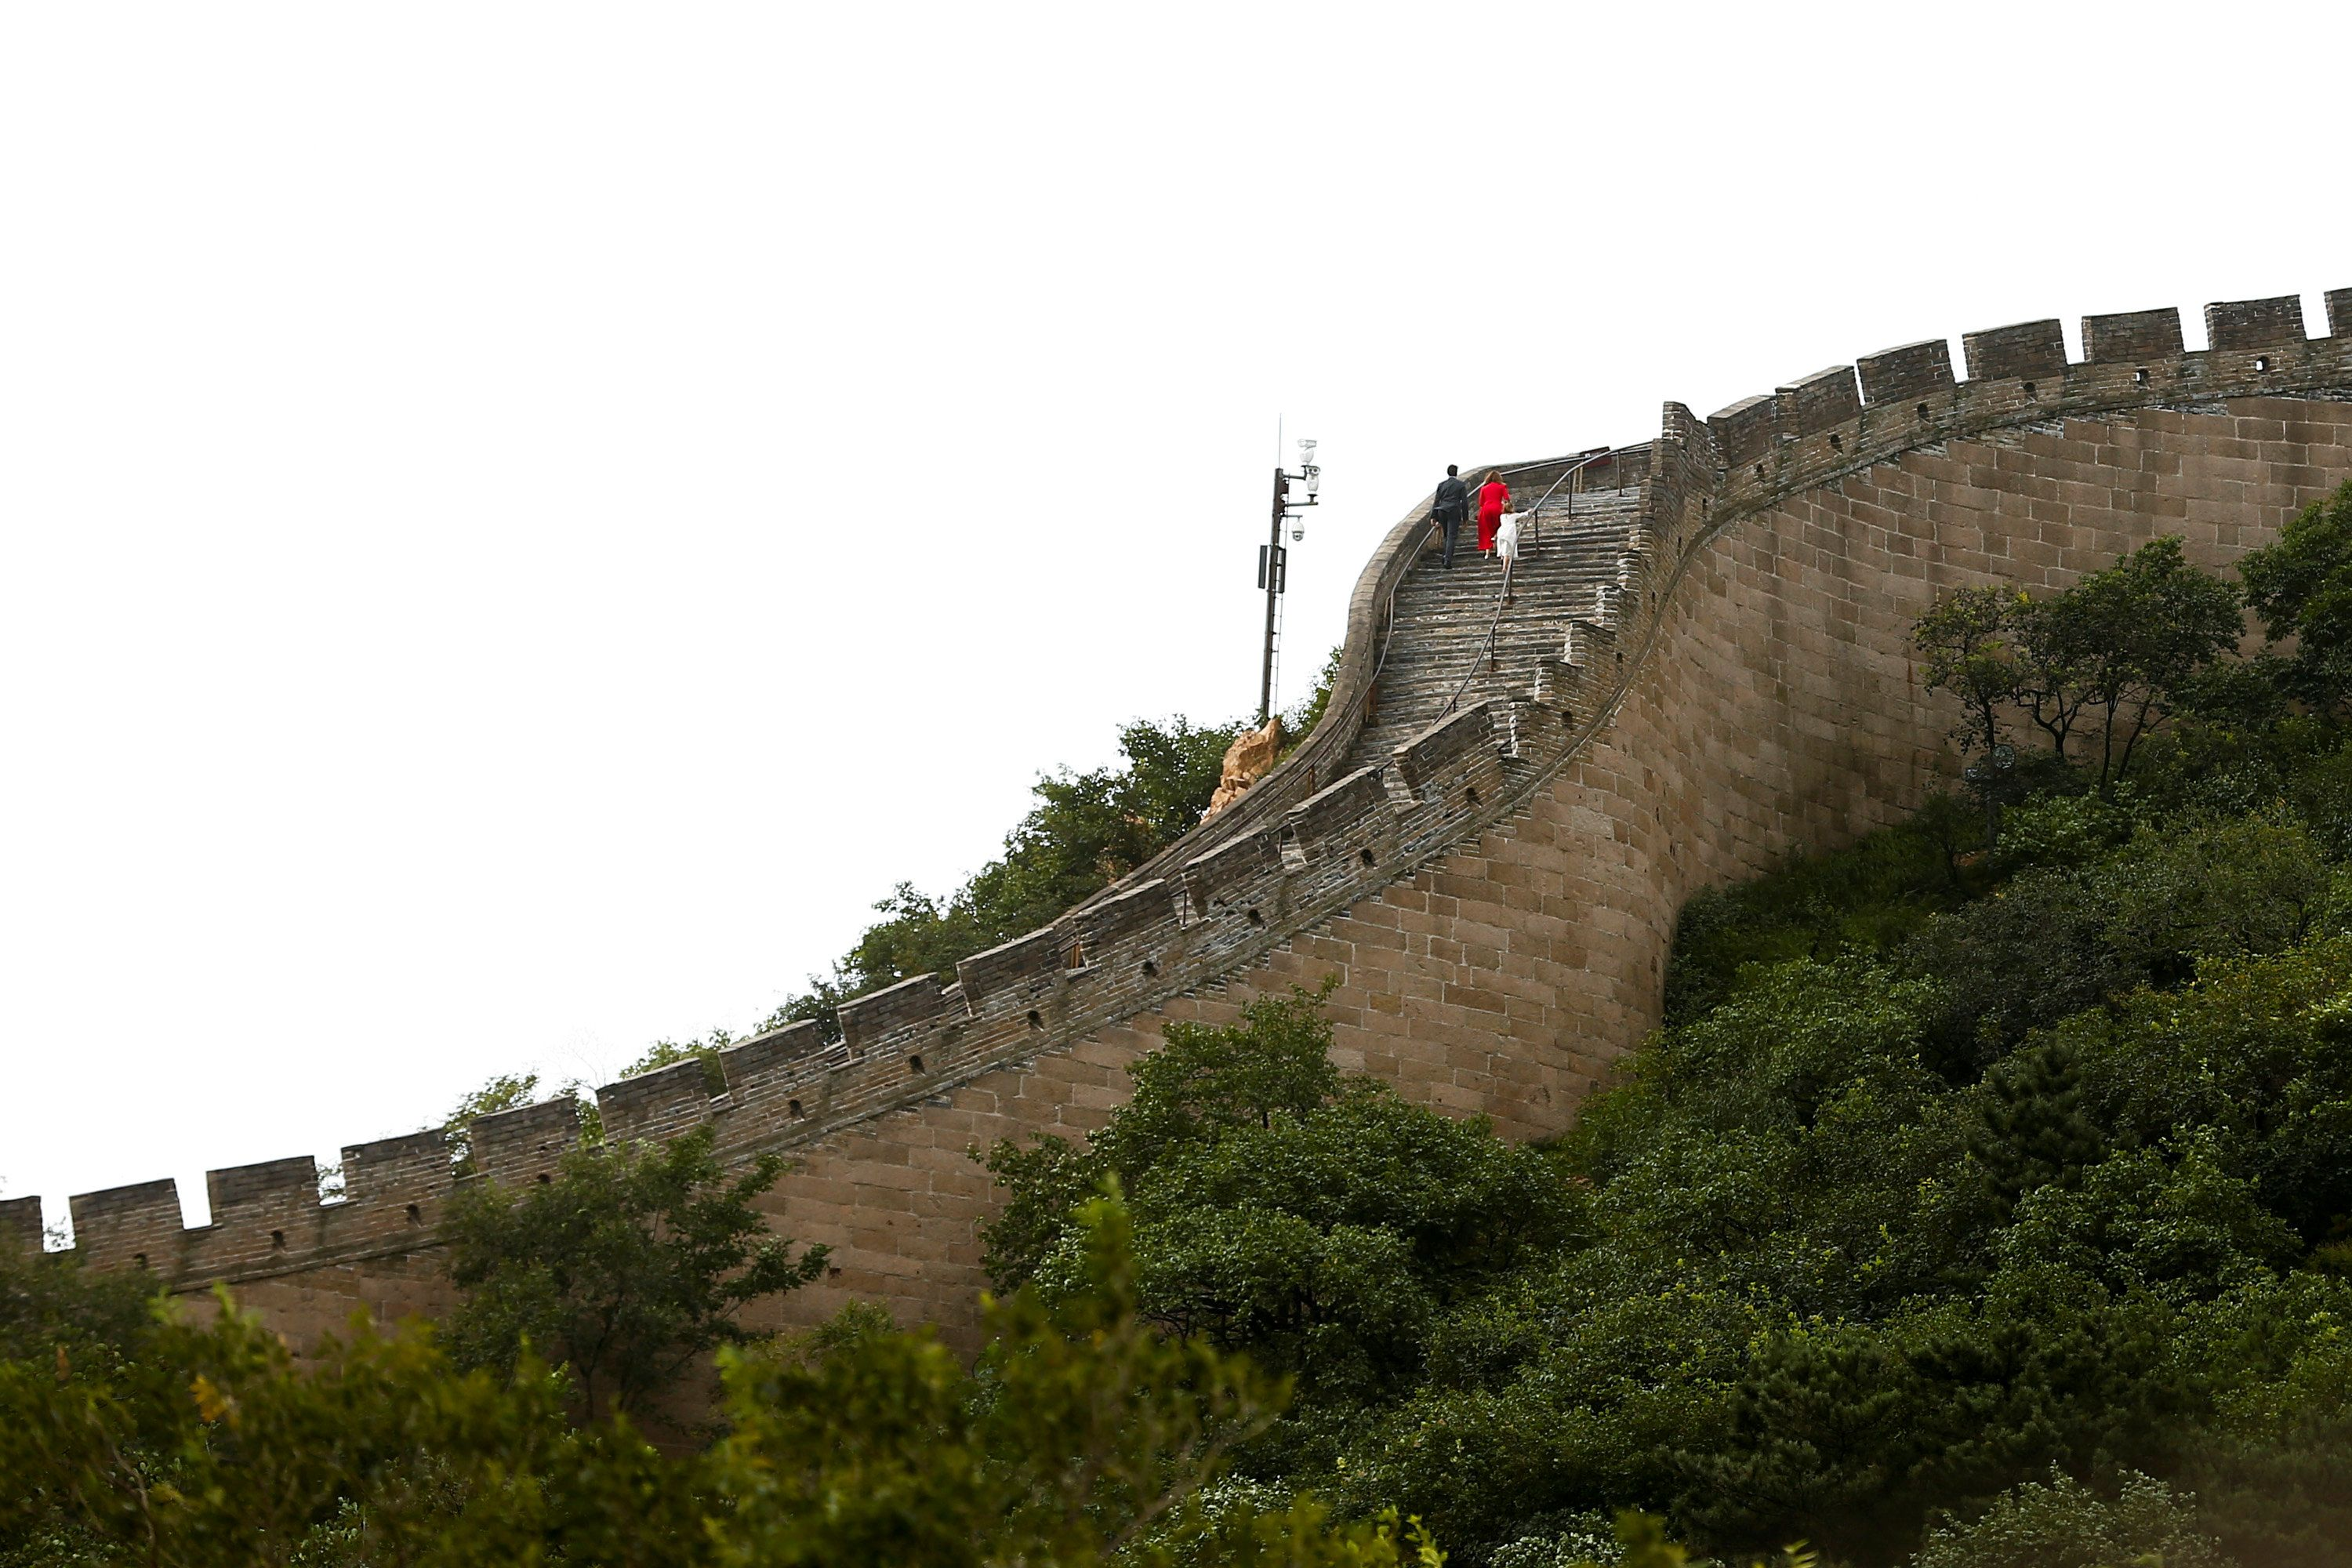 China to build deepest, largest high-speed rail station at Great Wall